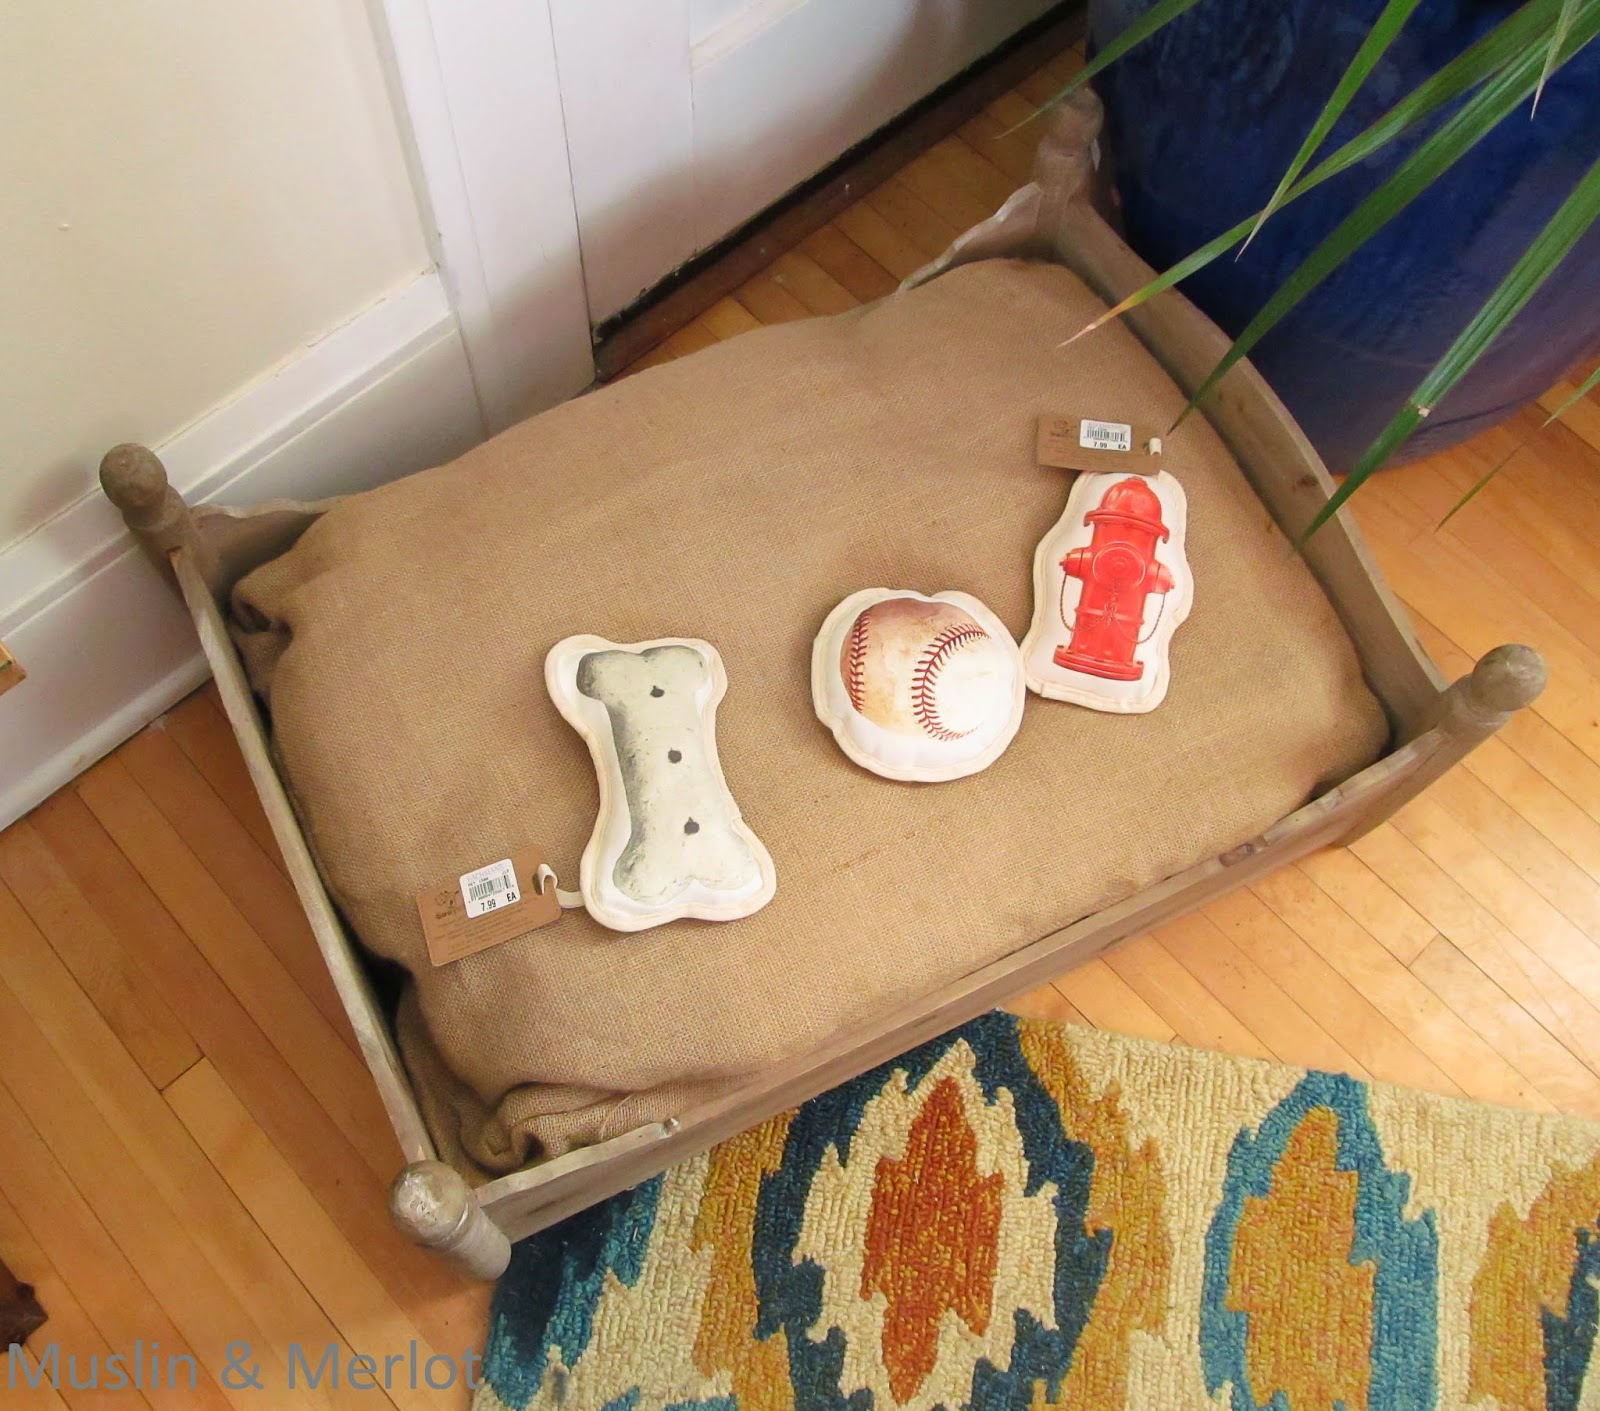 Cute dog bed with stair finials at the corners to mimic the look of a four poster bed.